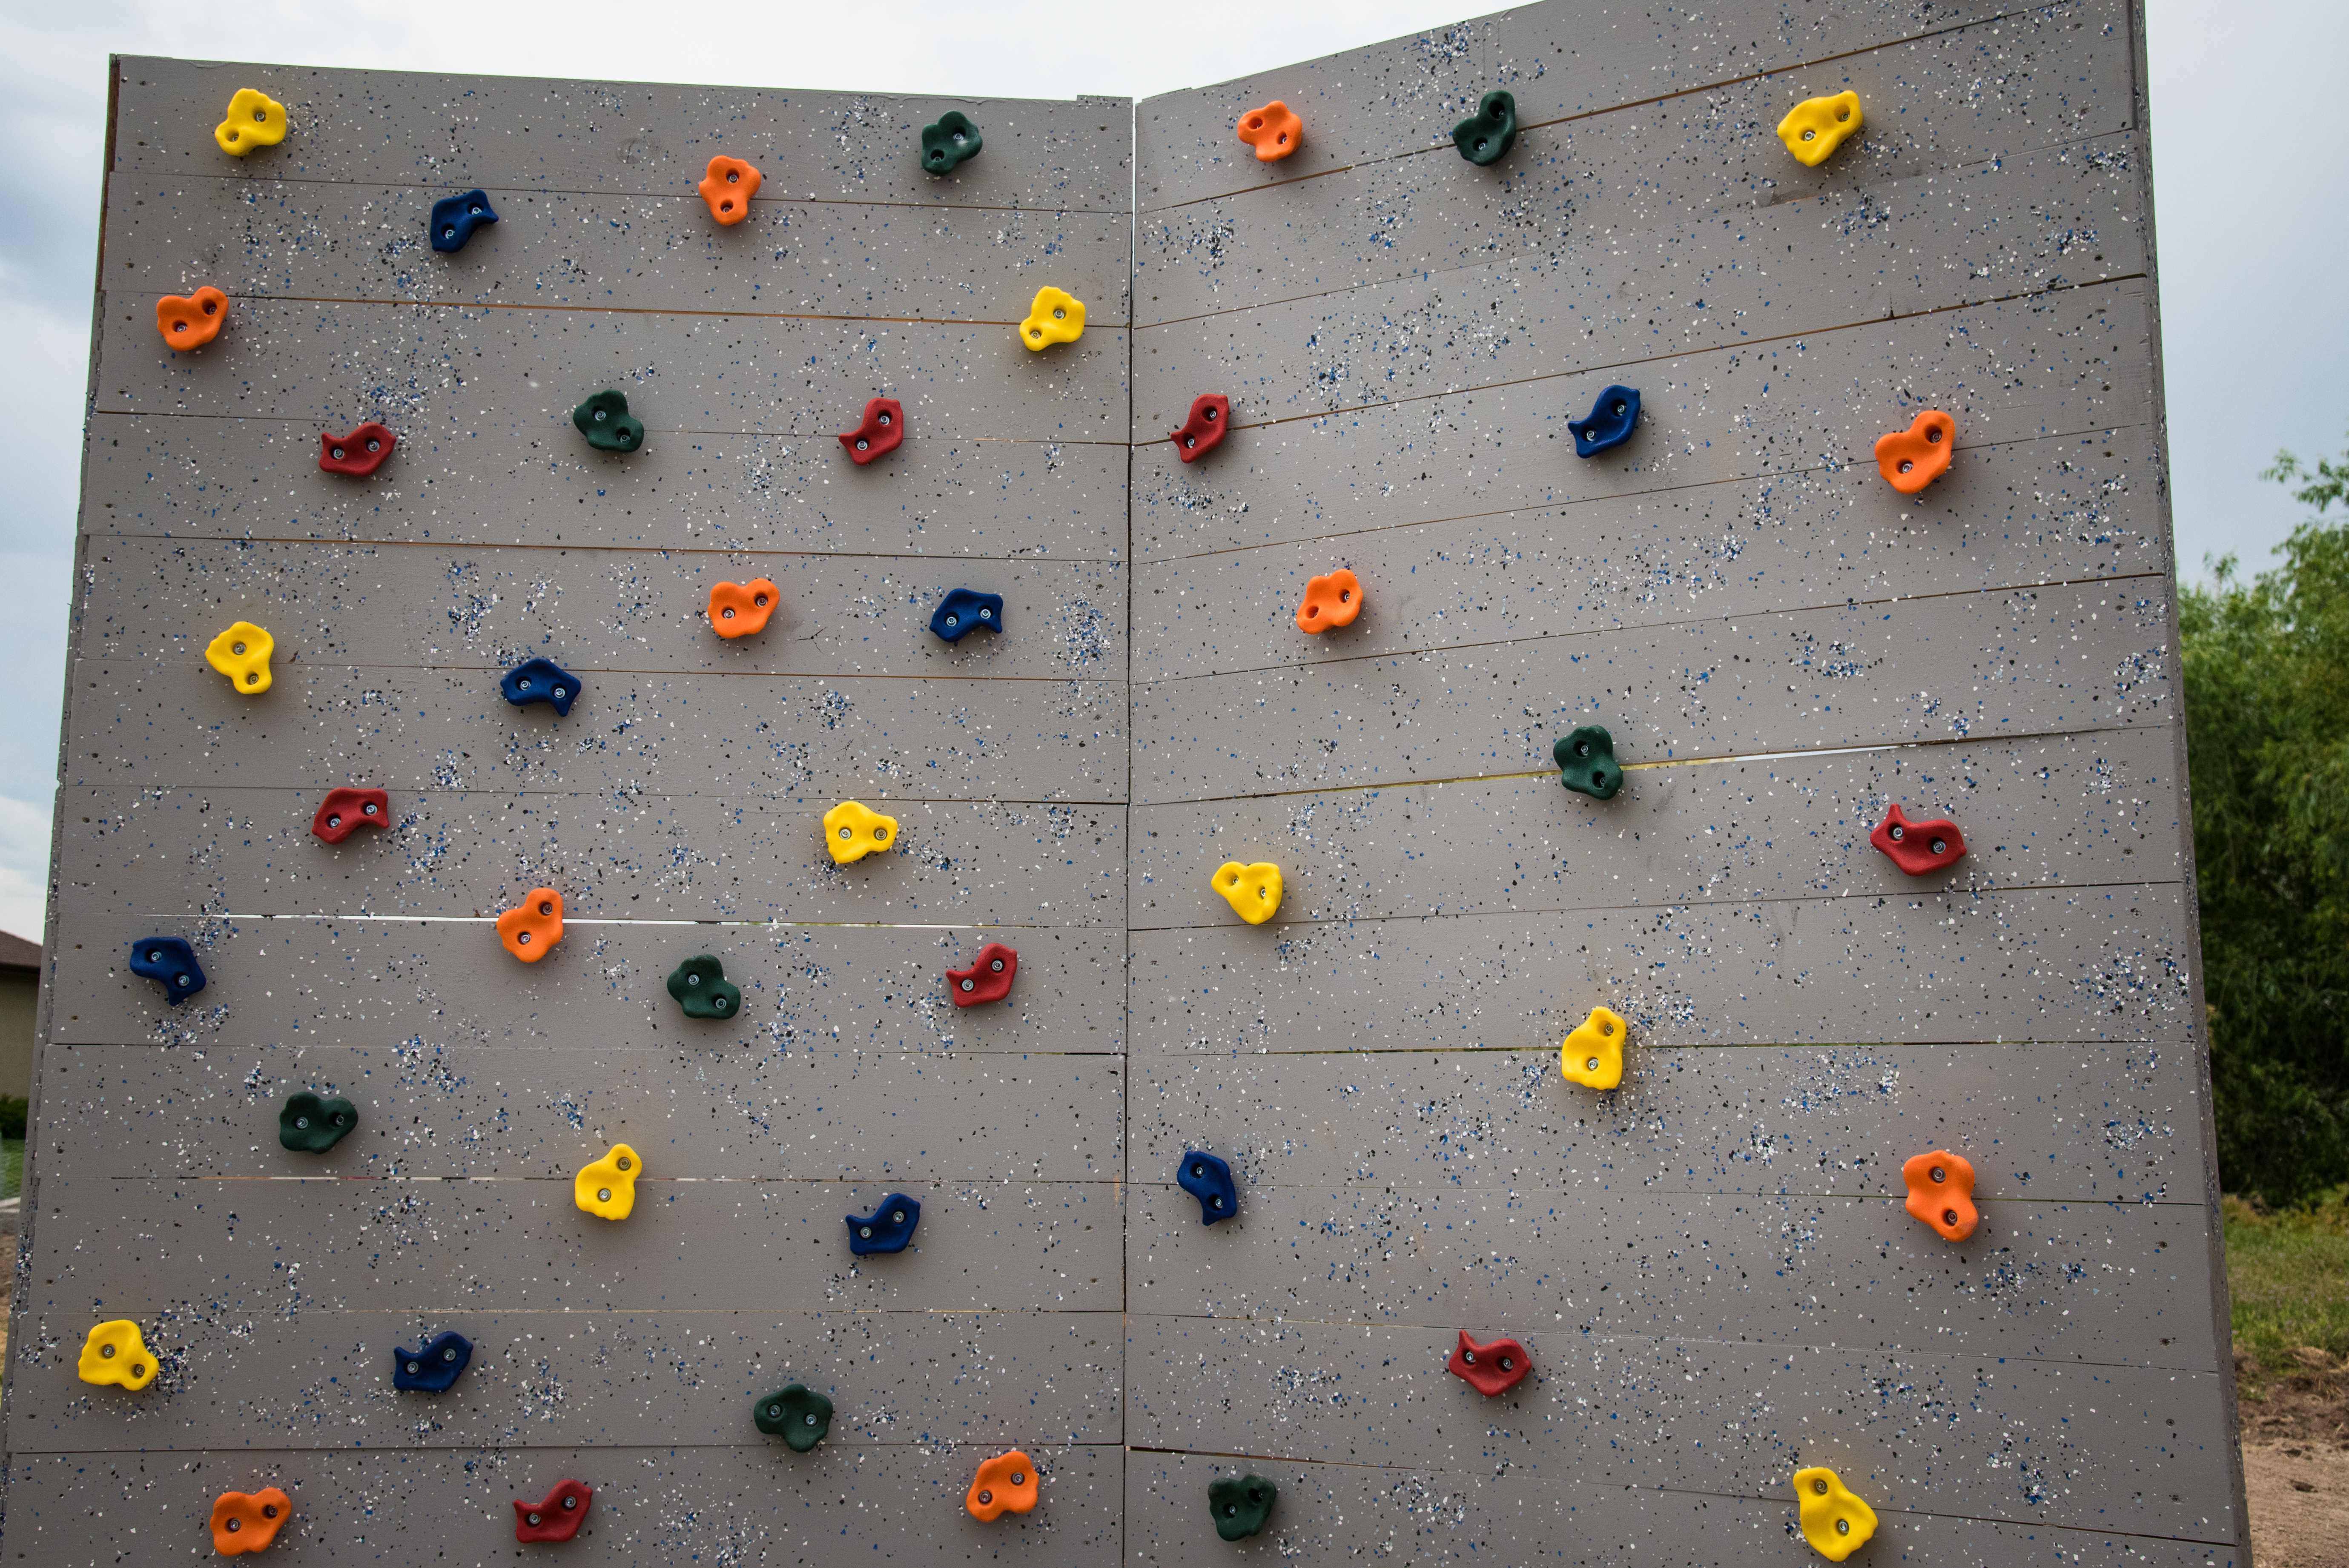 Rock Climbing Holds